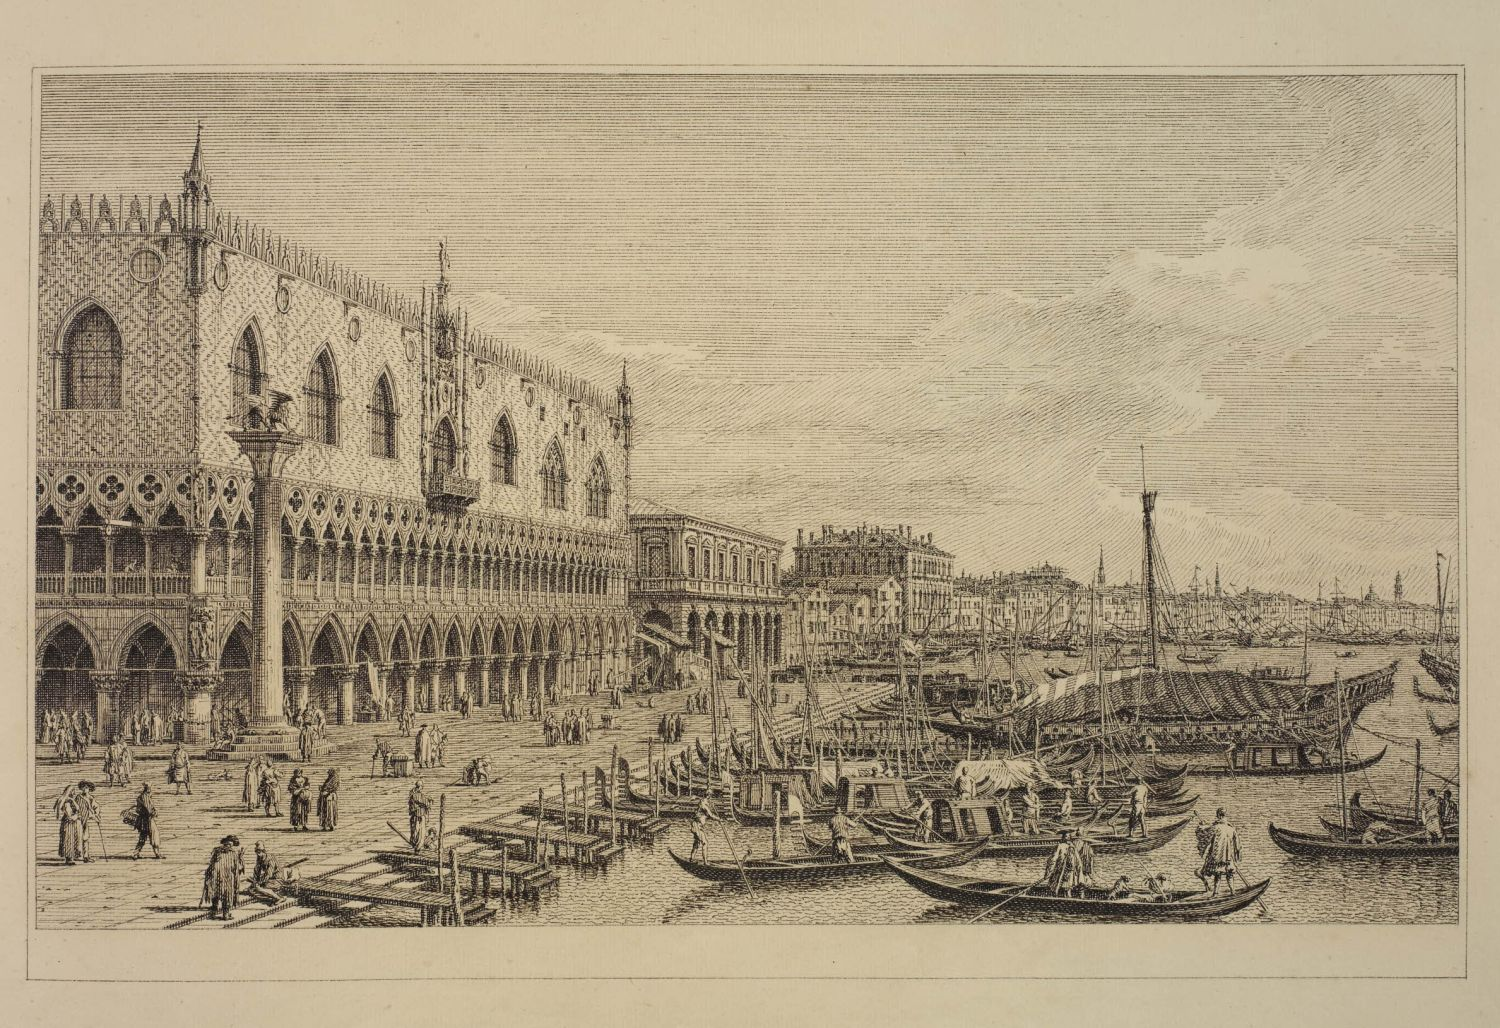 Antonio Visentini (1688-1782) after Antonio Canaletto (1697-1768), View from the Piazza San Marco to the Schiavoni, 1735-1742, pen and brown ink, 25.5 x 42.7 cm, British Museum 1948,0704.28.